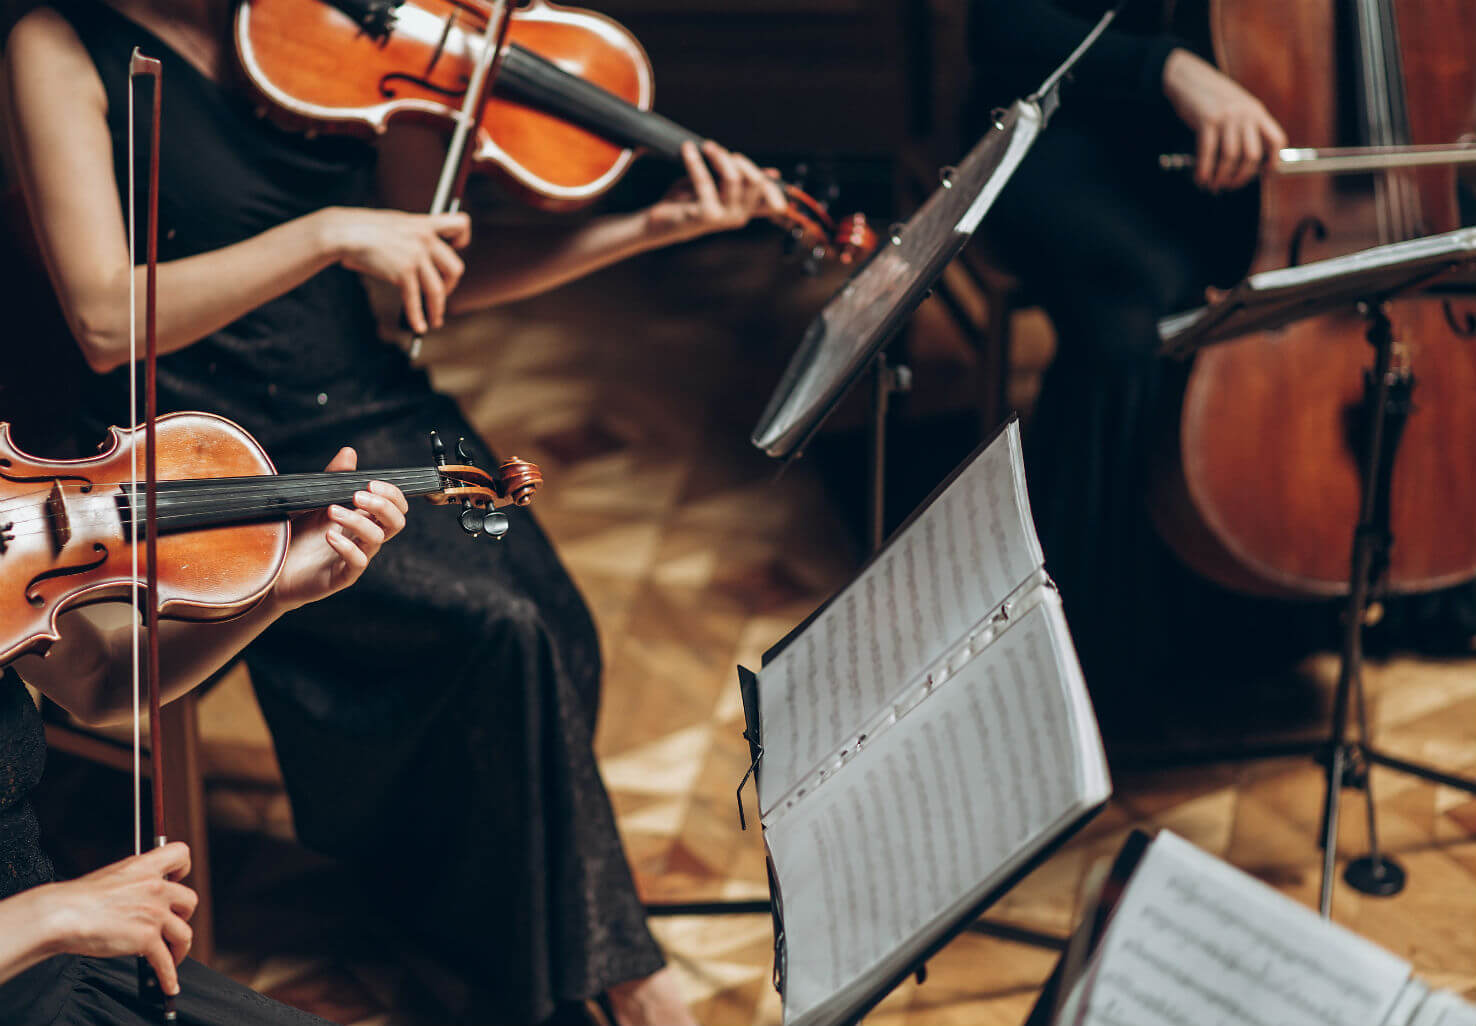 Professional musicians playing violins in an orchestra